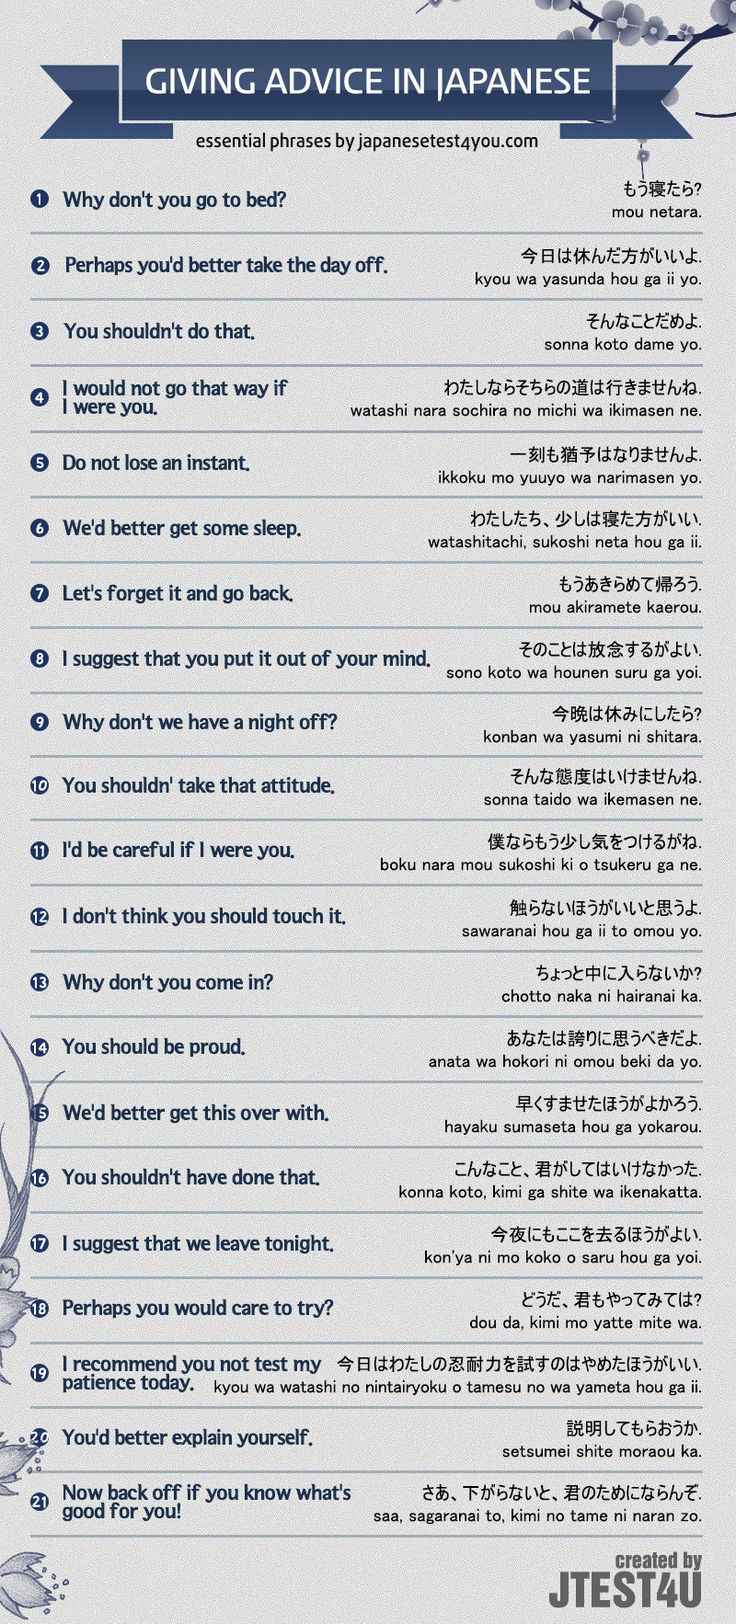 Infographic: How To Give Advice Or Make Suggestions In Japanese Http: